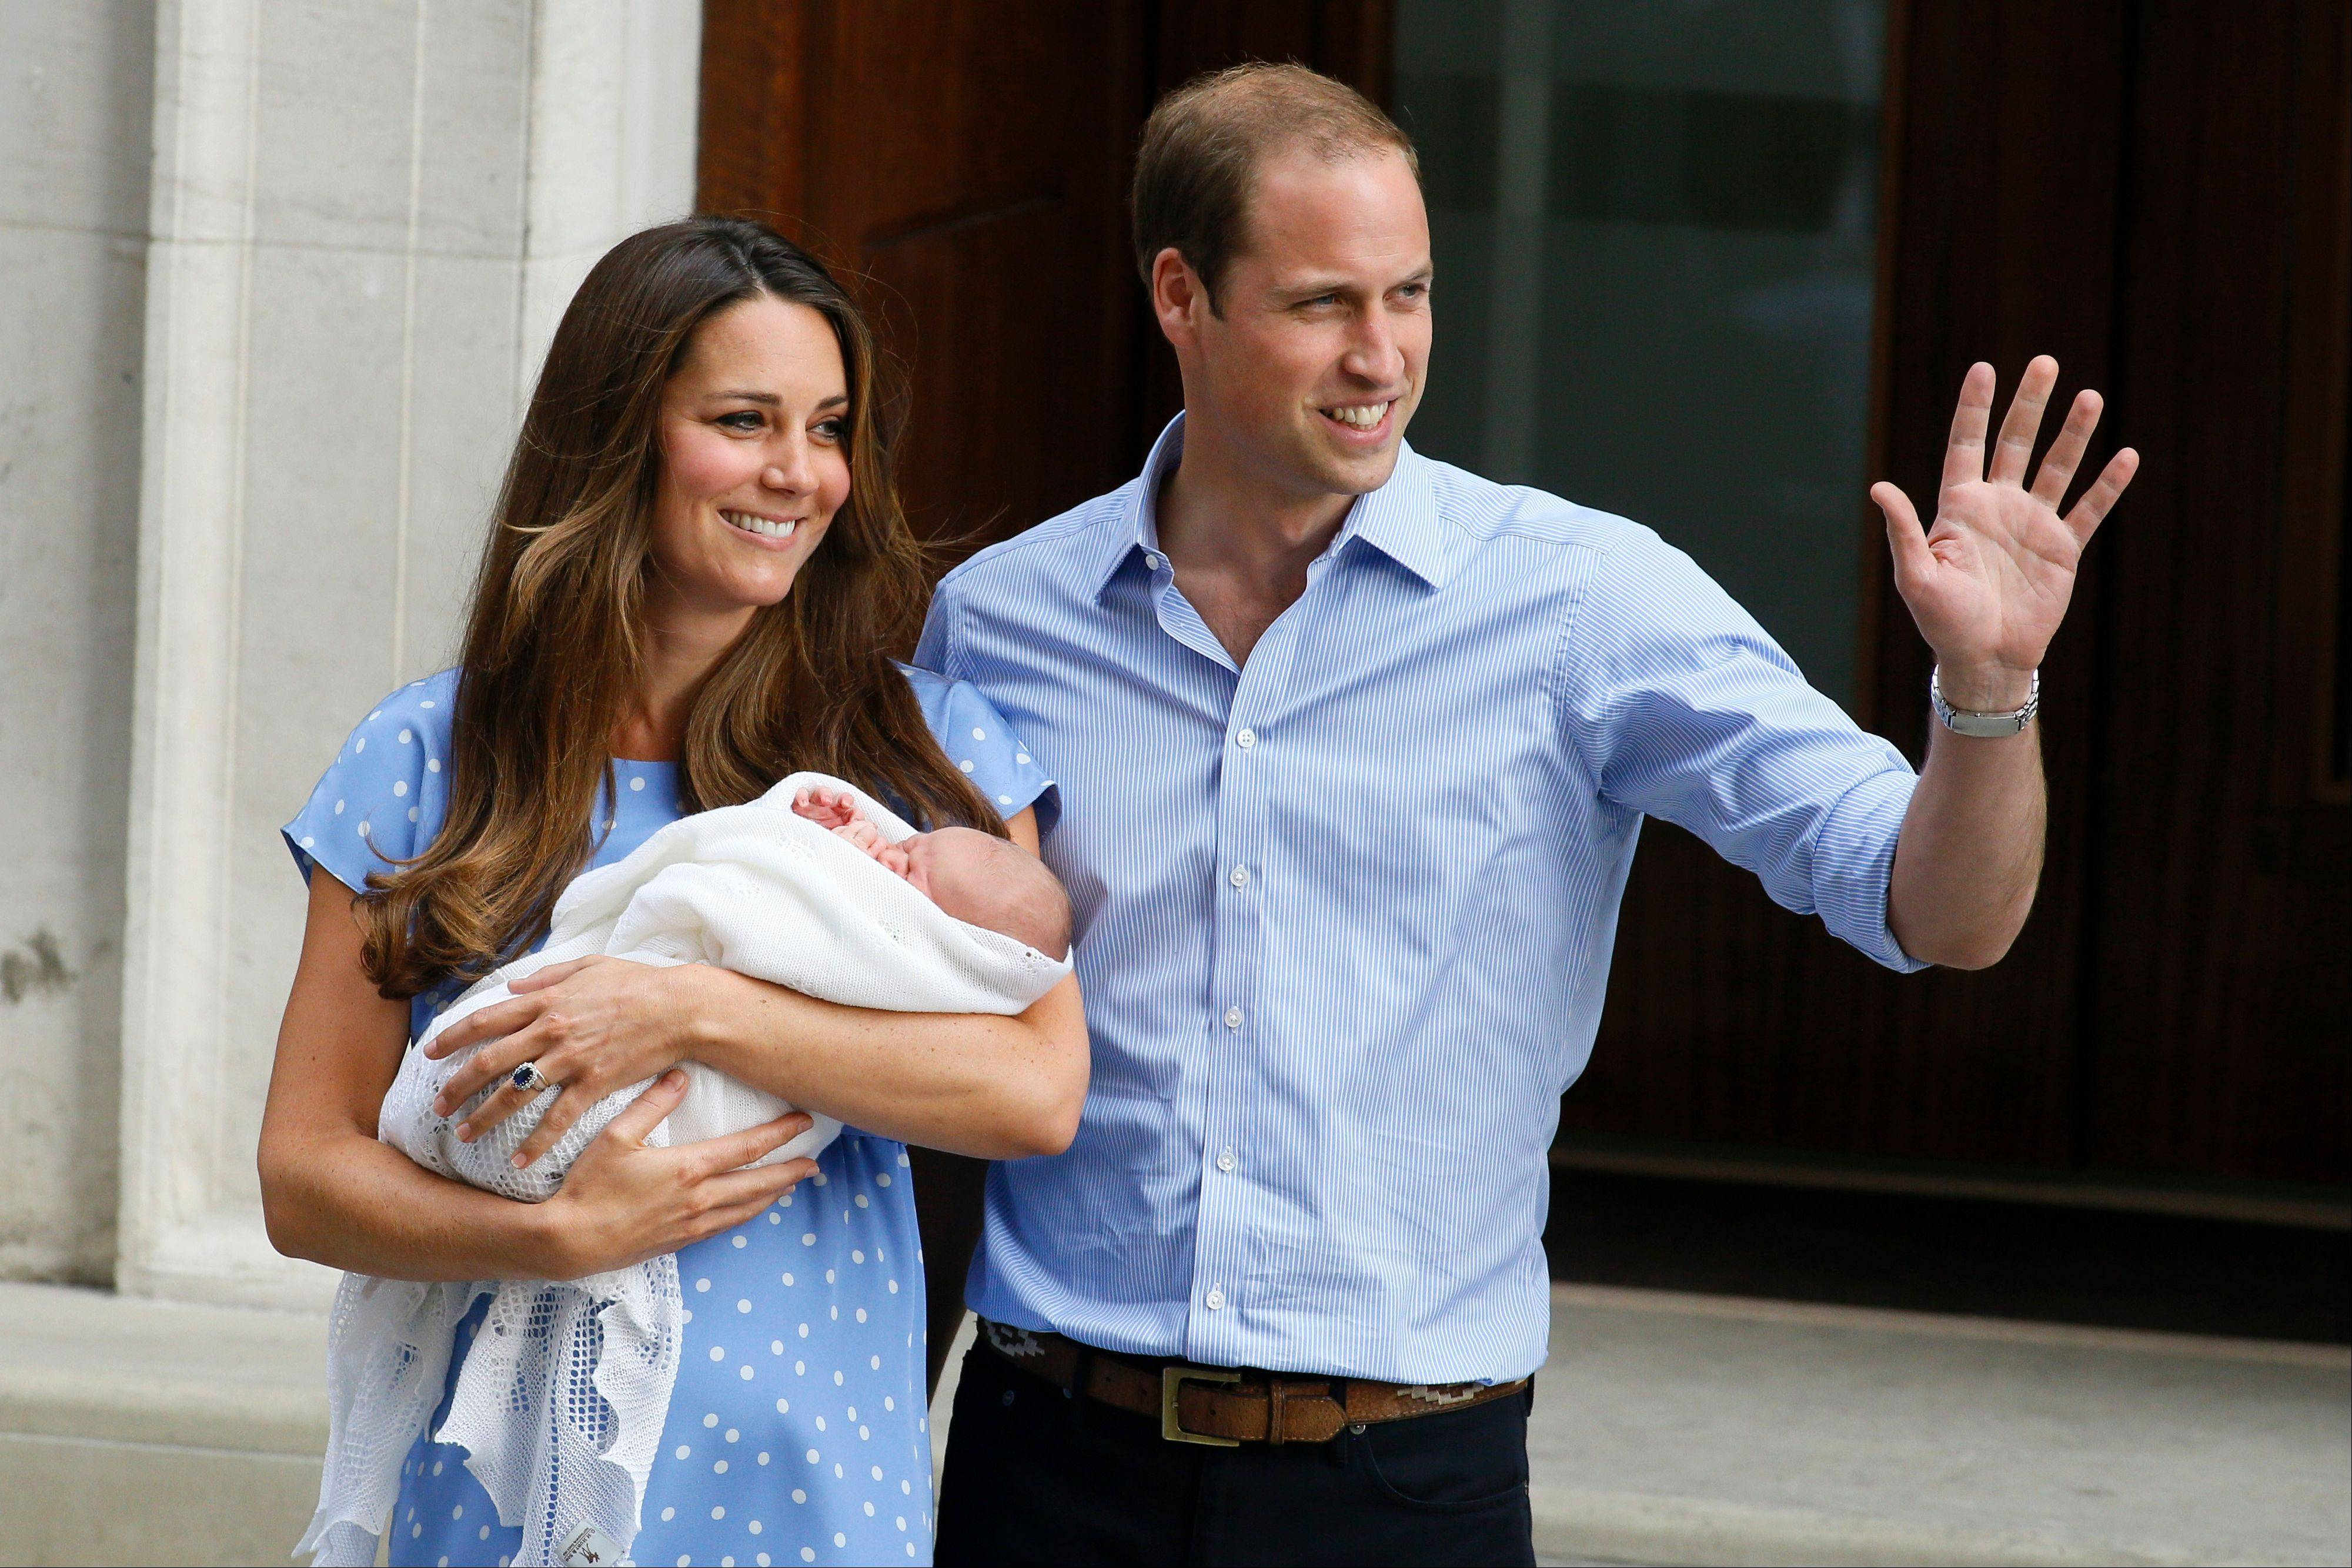 Britain's Prince William, right, and Kate, Duchess of Cambridge, hold the Prince of Cambridge, Tuesday July 23, 2013, as they pose for photographers outside St. Mary's Hospital exclusive Lindo Wing in London where the Duchess gave birth on Monday July 22. Palace officials said Wednesday that the new prince has been named George Alexander Louis.